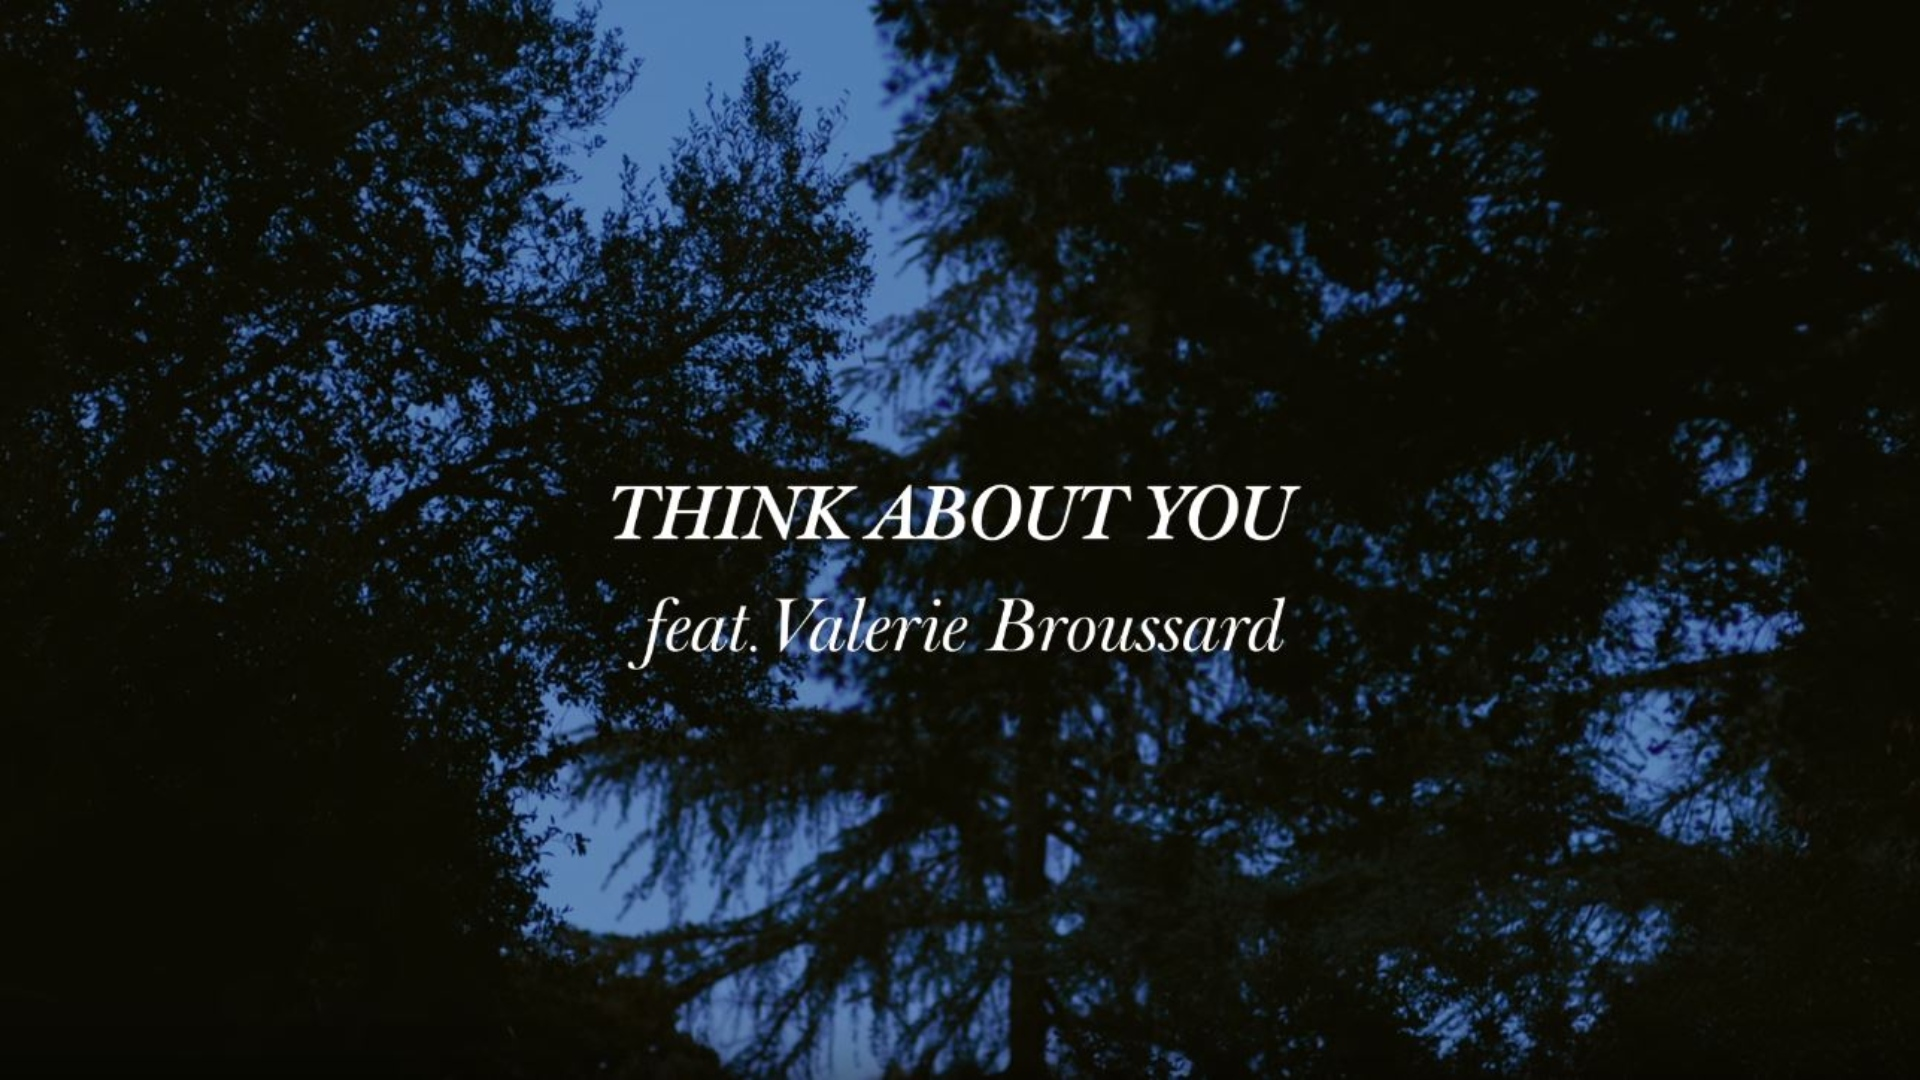 KYGO - Think About You ft Valerie Broussard